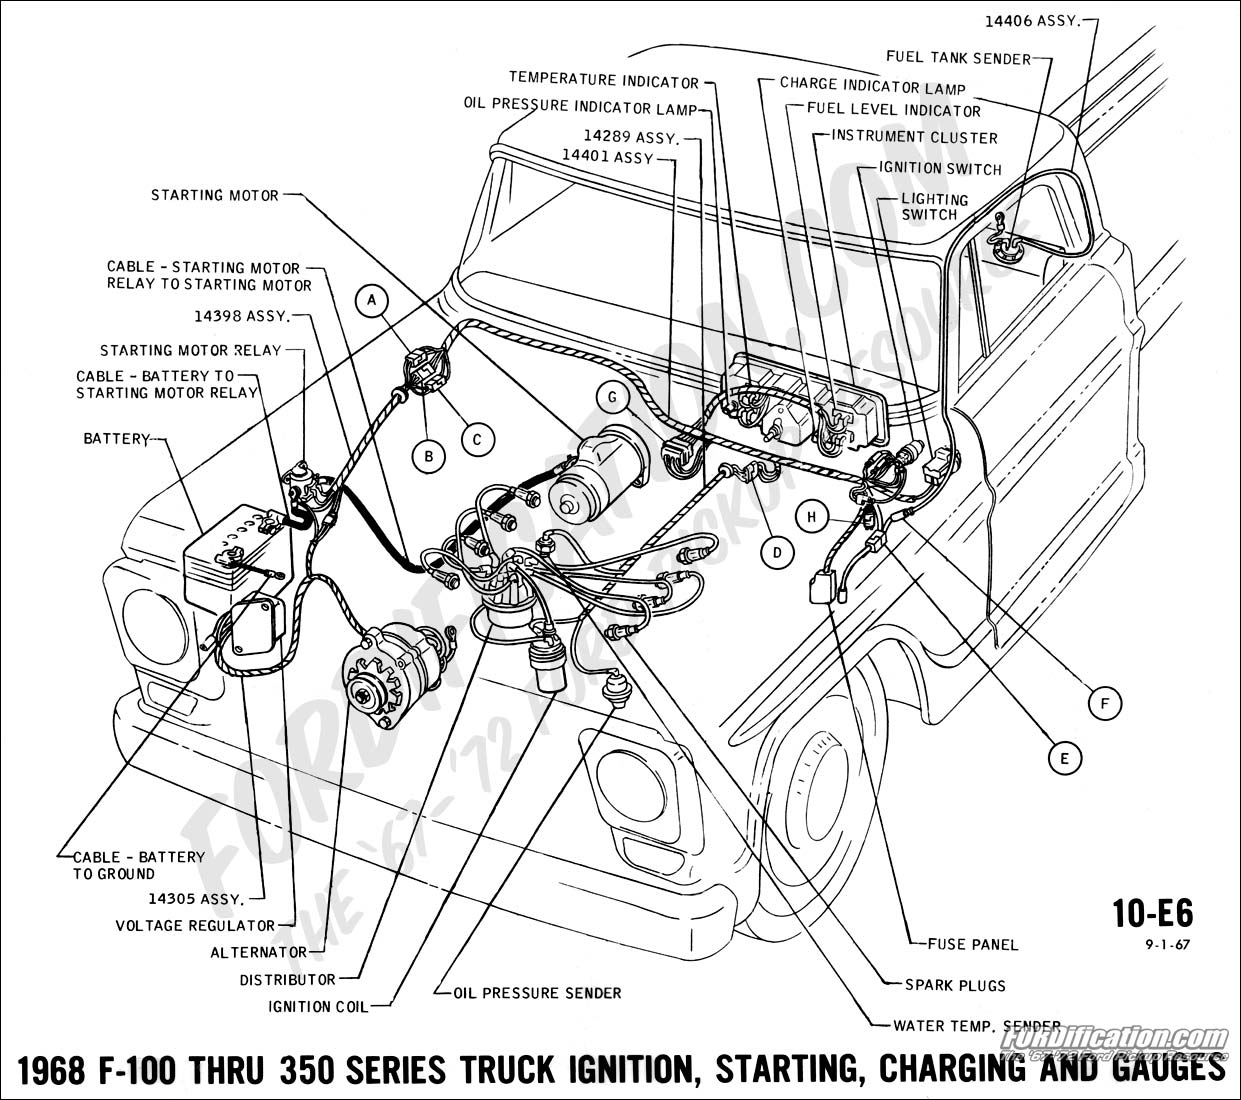 hight resolution of 1968 f 100 thru f 350 ignition starting charging and gauges